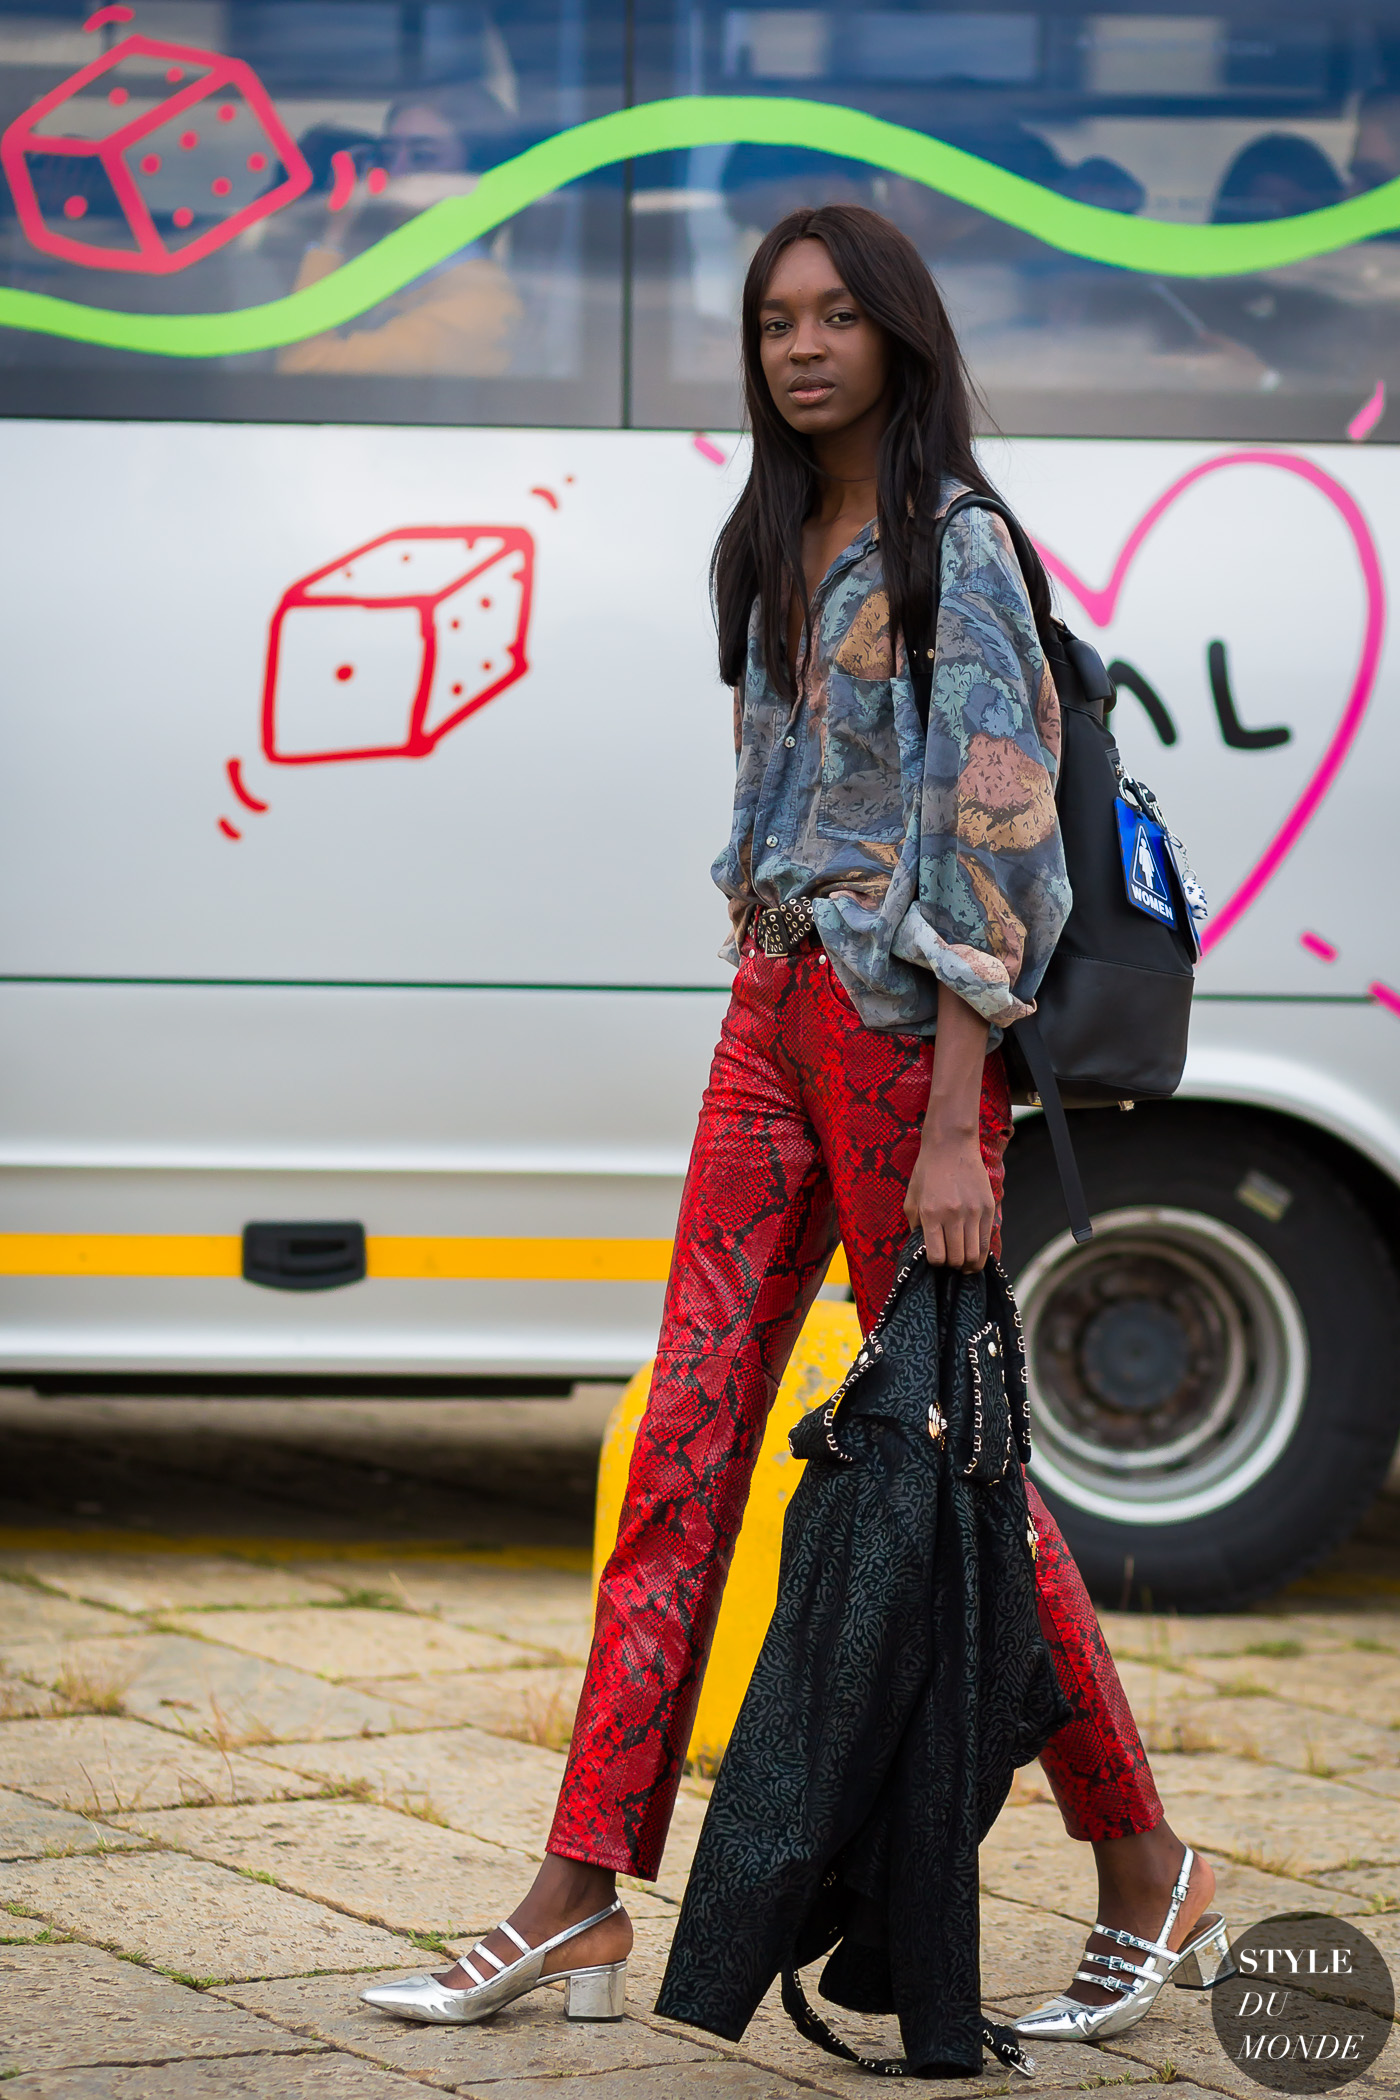 model-after-gucci-by-styledumonde-street-style-fashion-photography